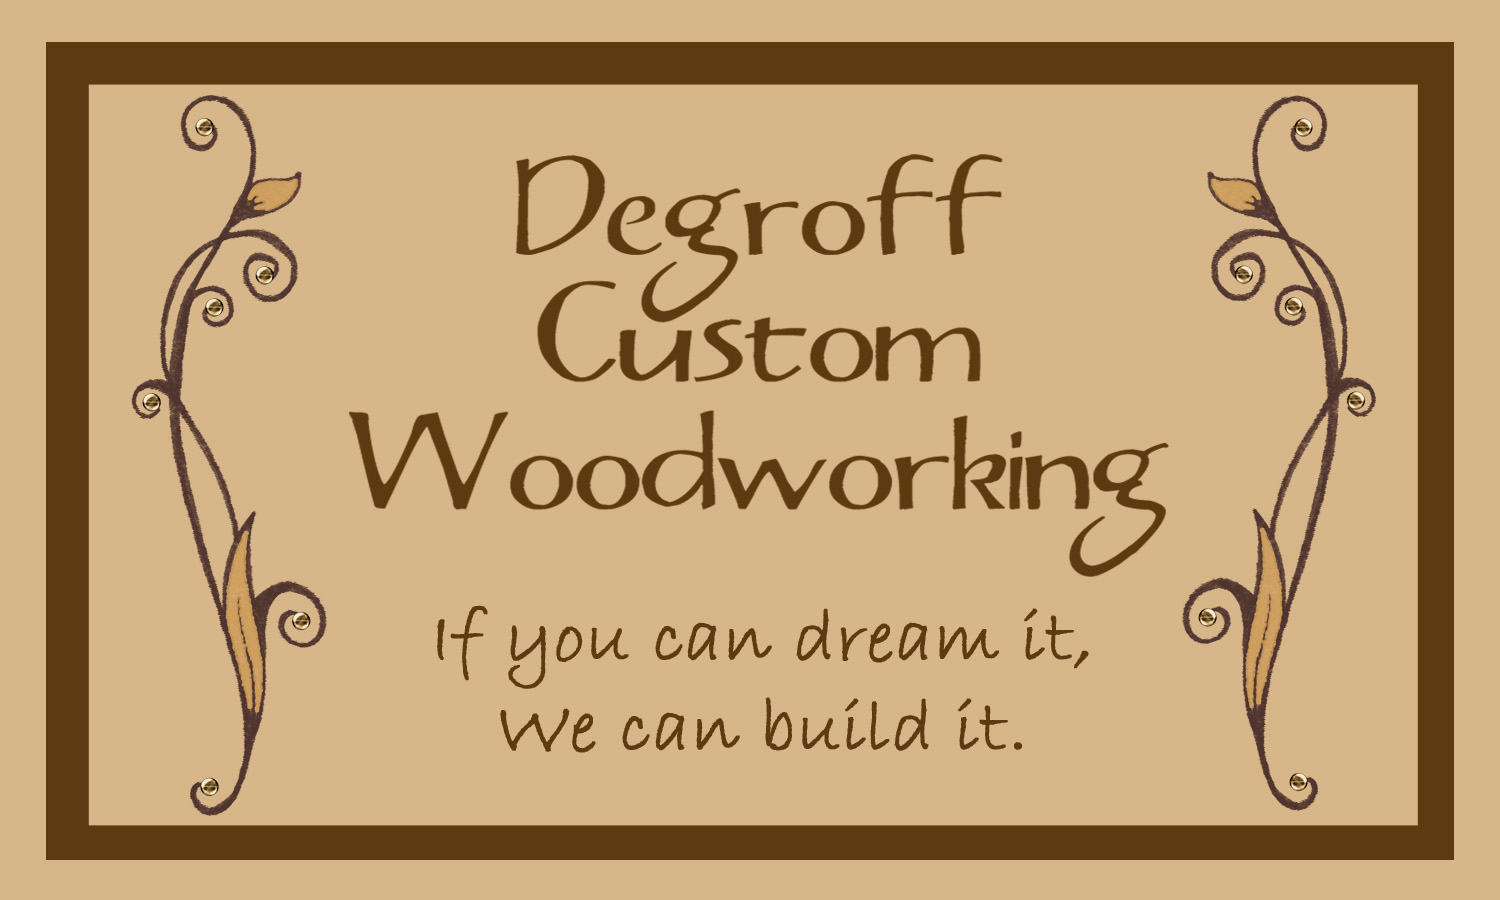 DeGroff Custom Woodworking